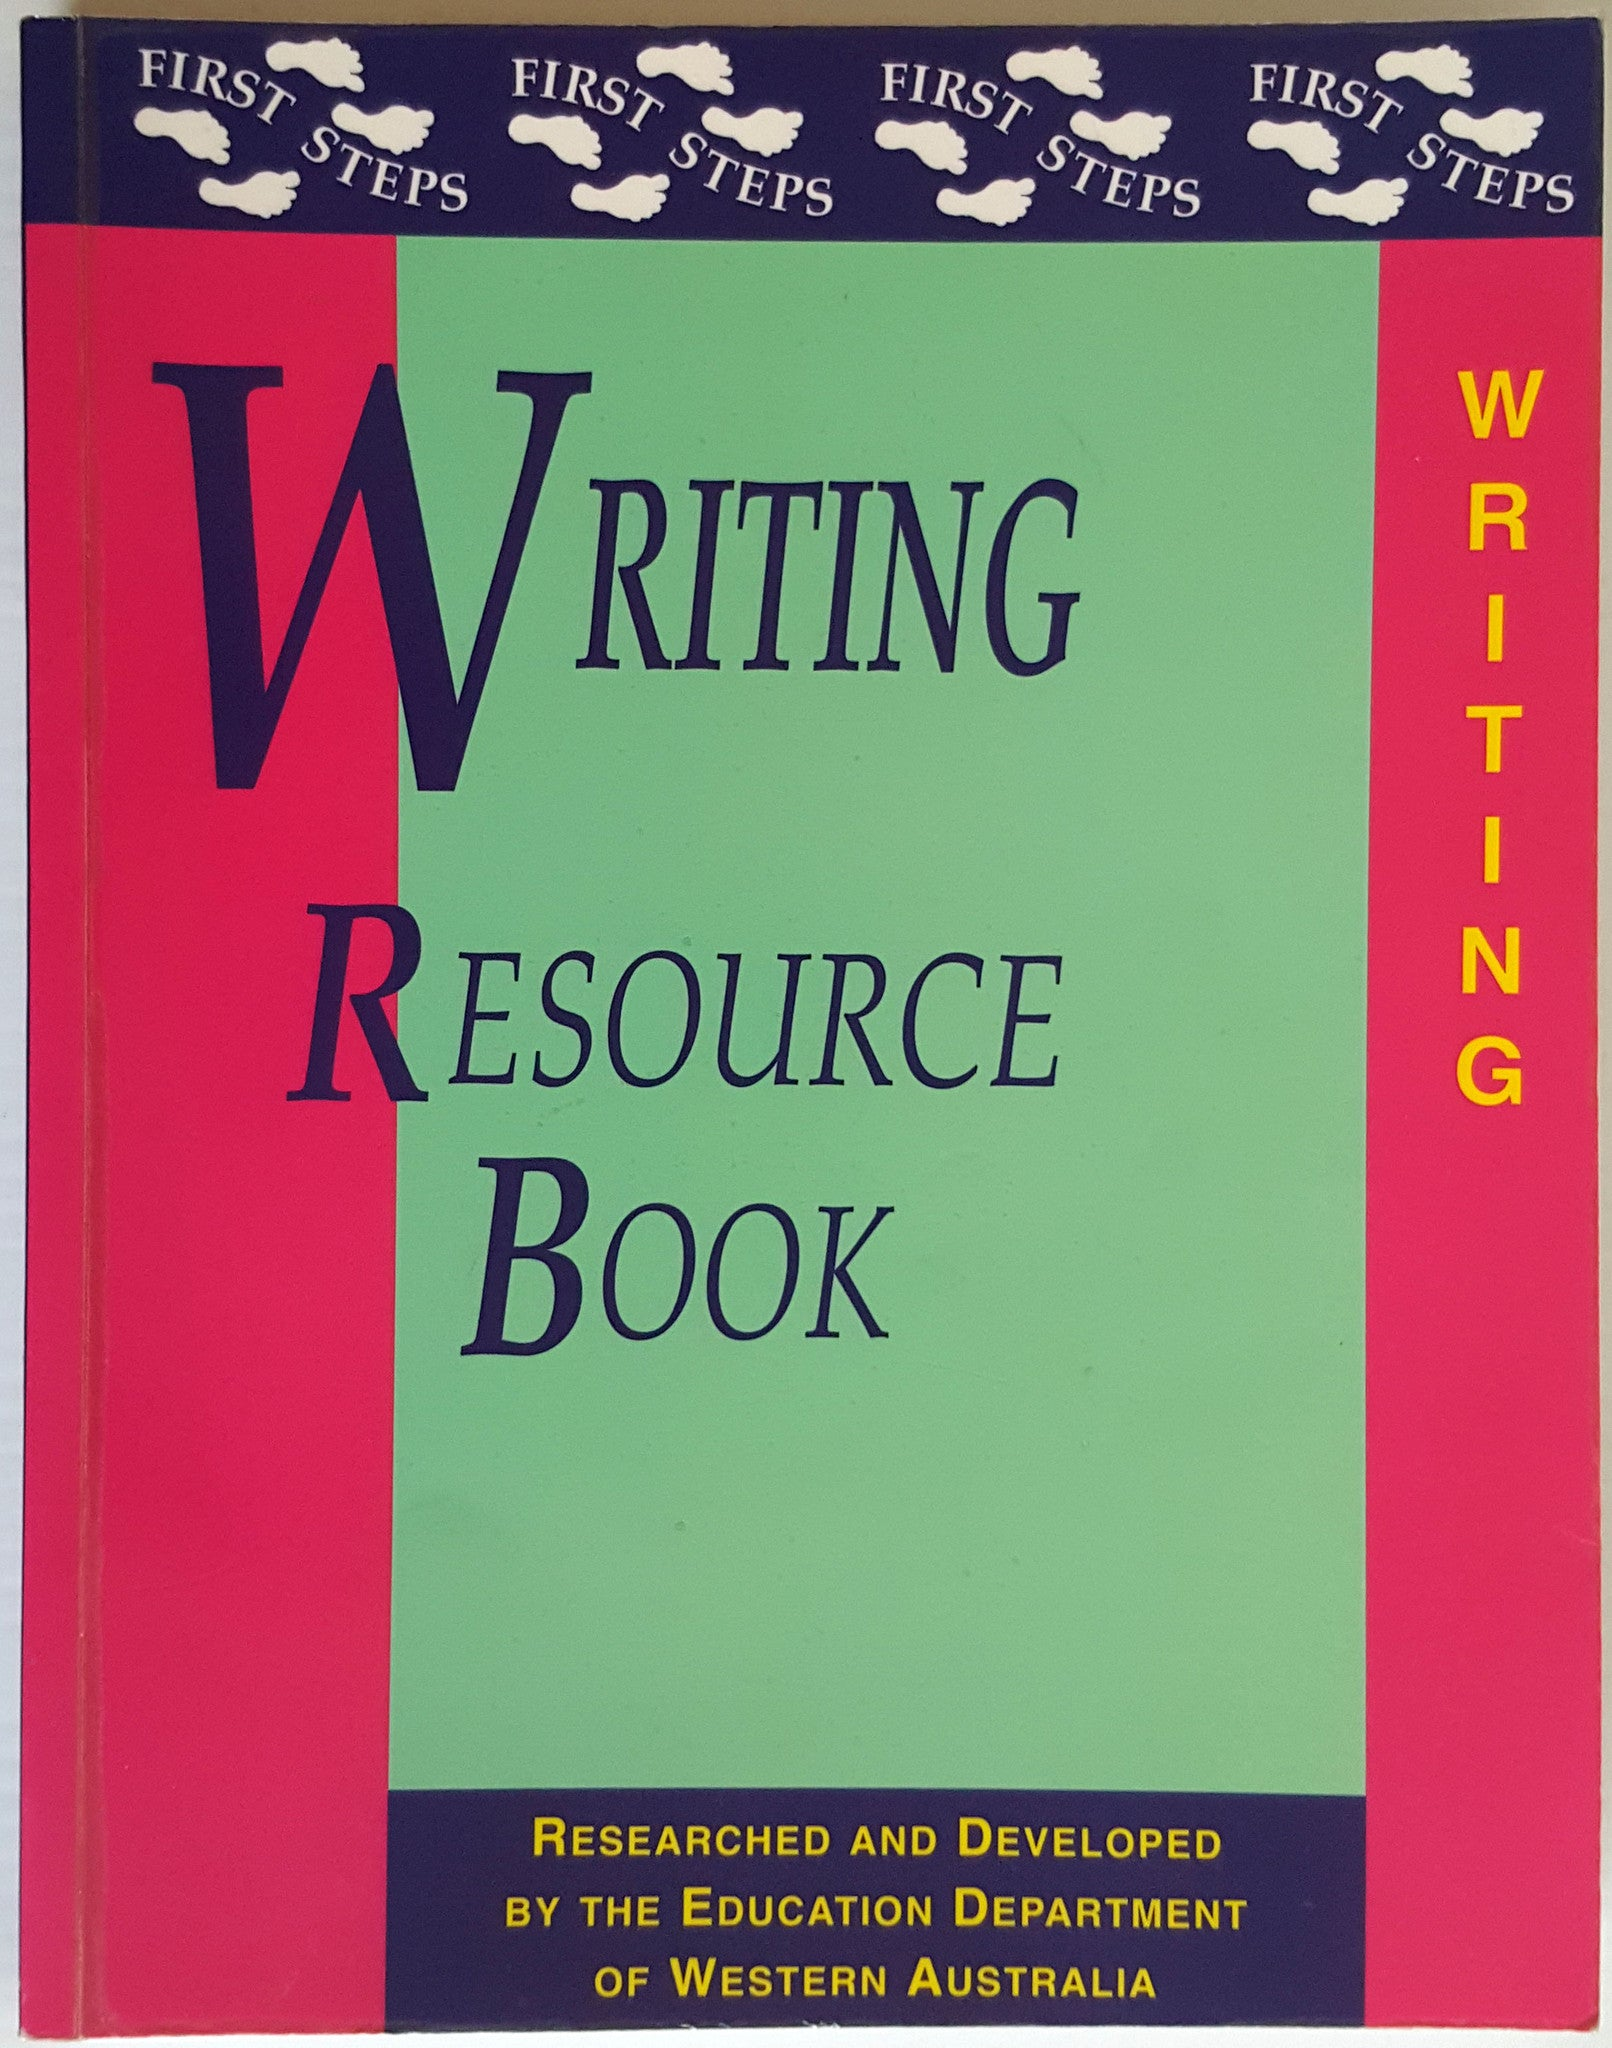 First steps to writing a book